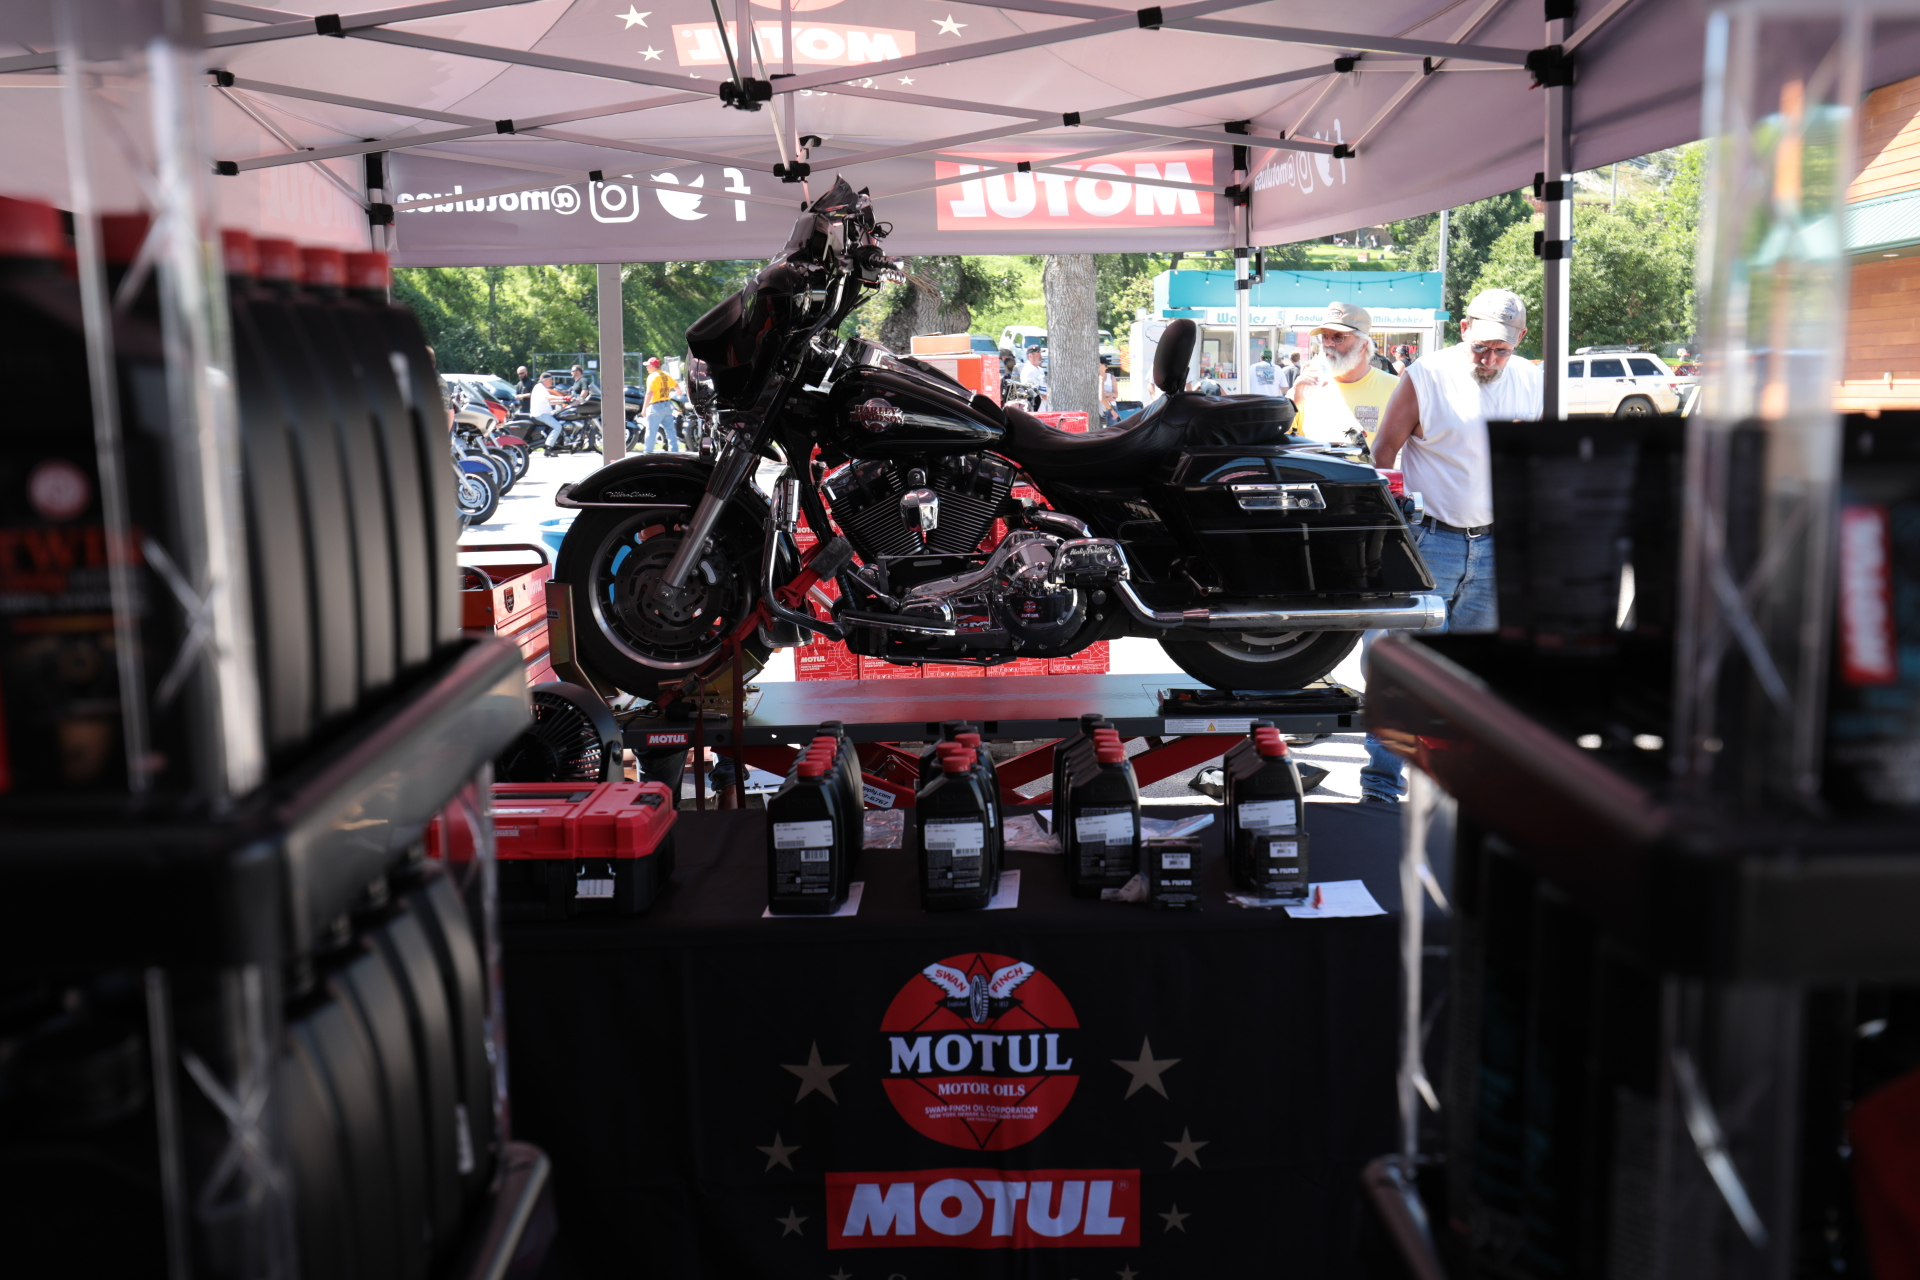 Why is the event so special for Motul?